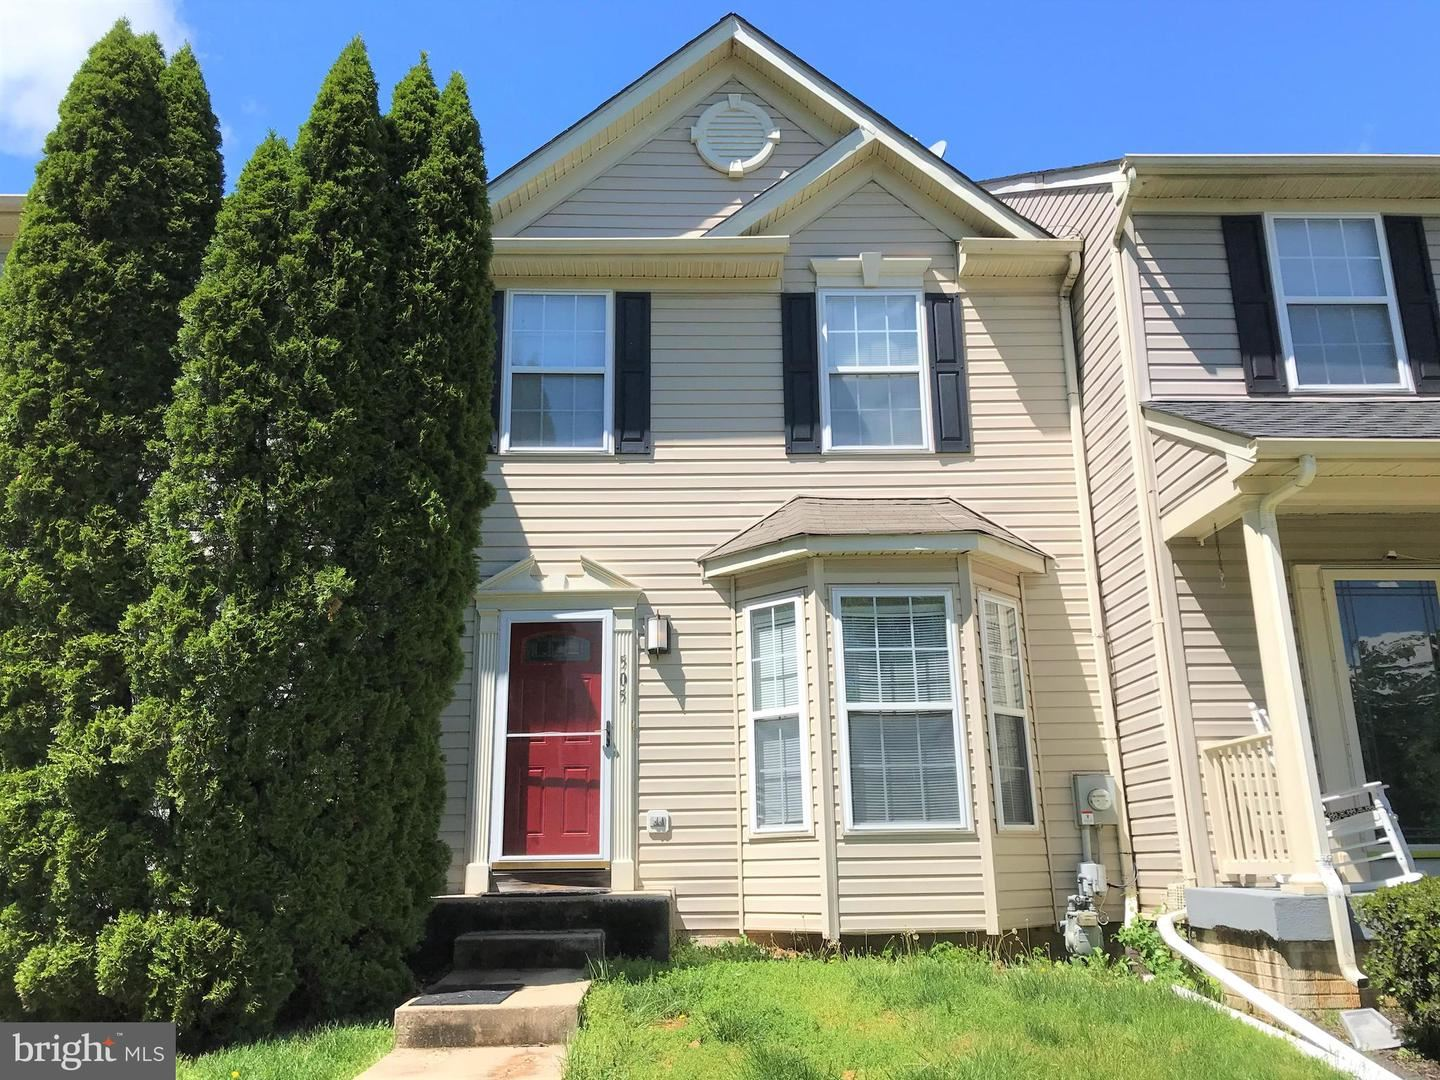 505 BUTTONWOODS RD, Elkton, MD 21921 - MLS#: MDCC174548